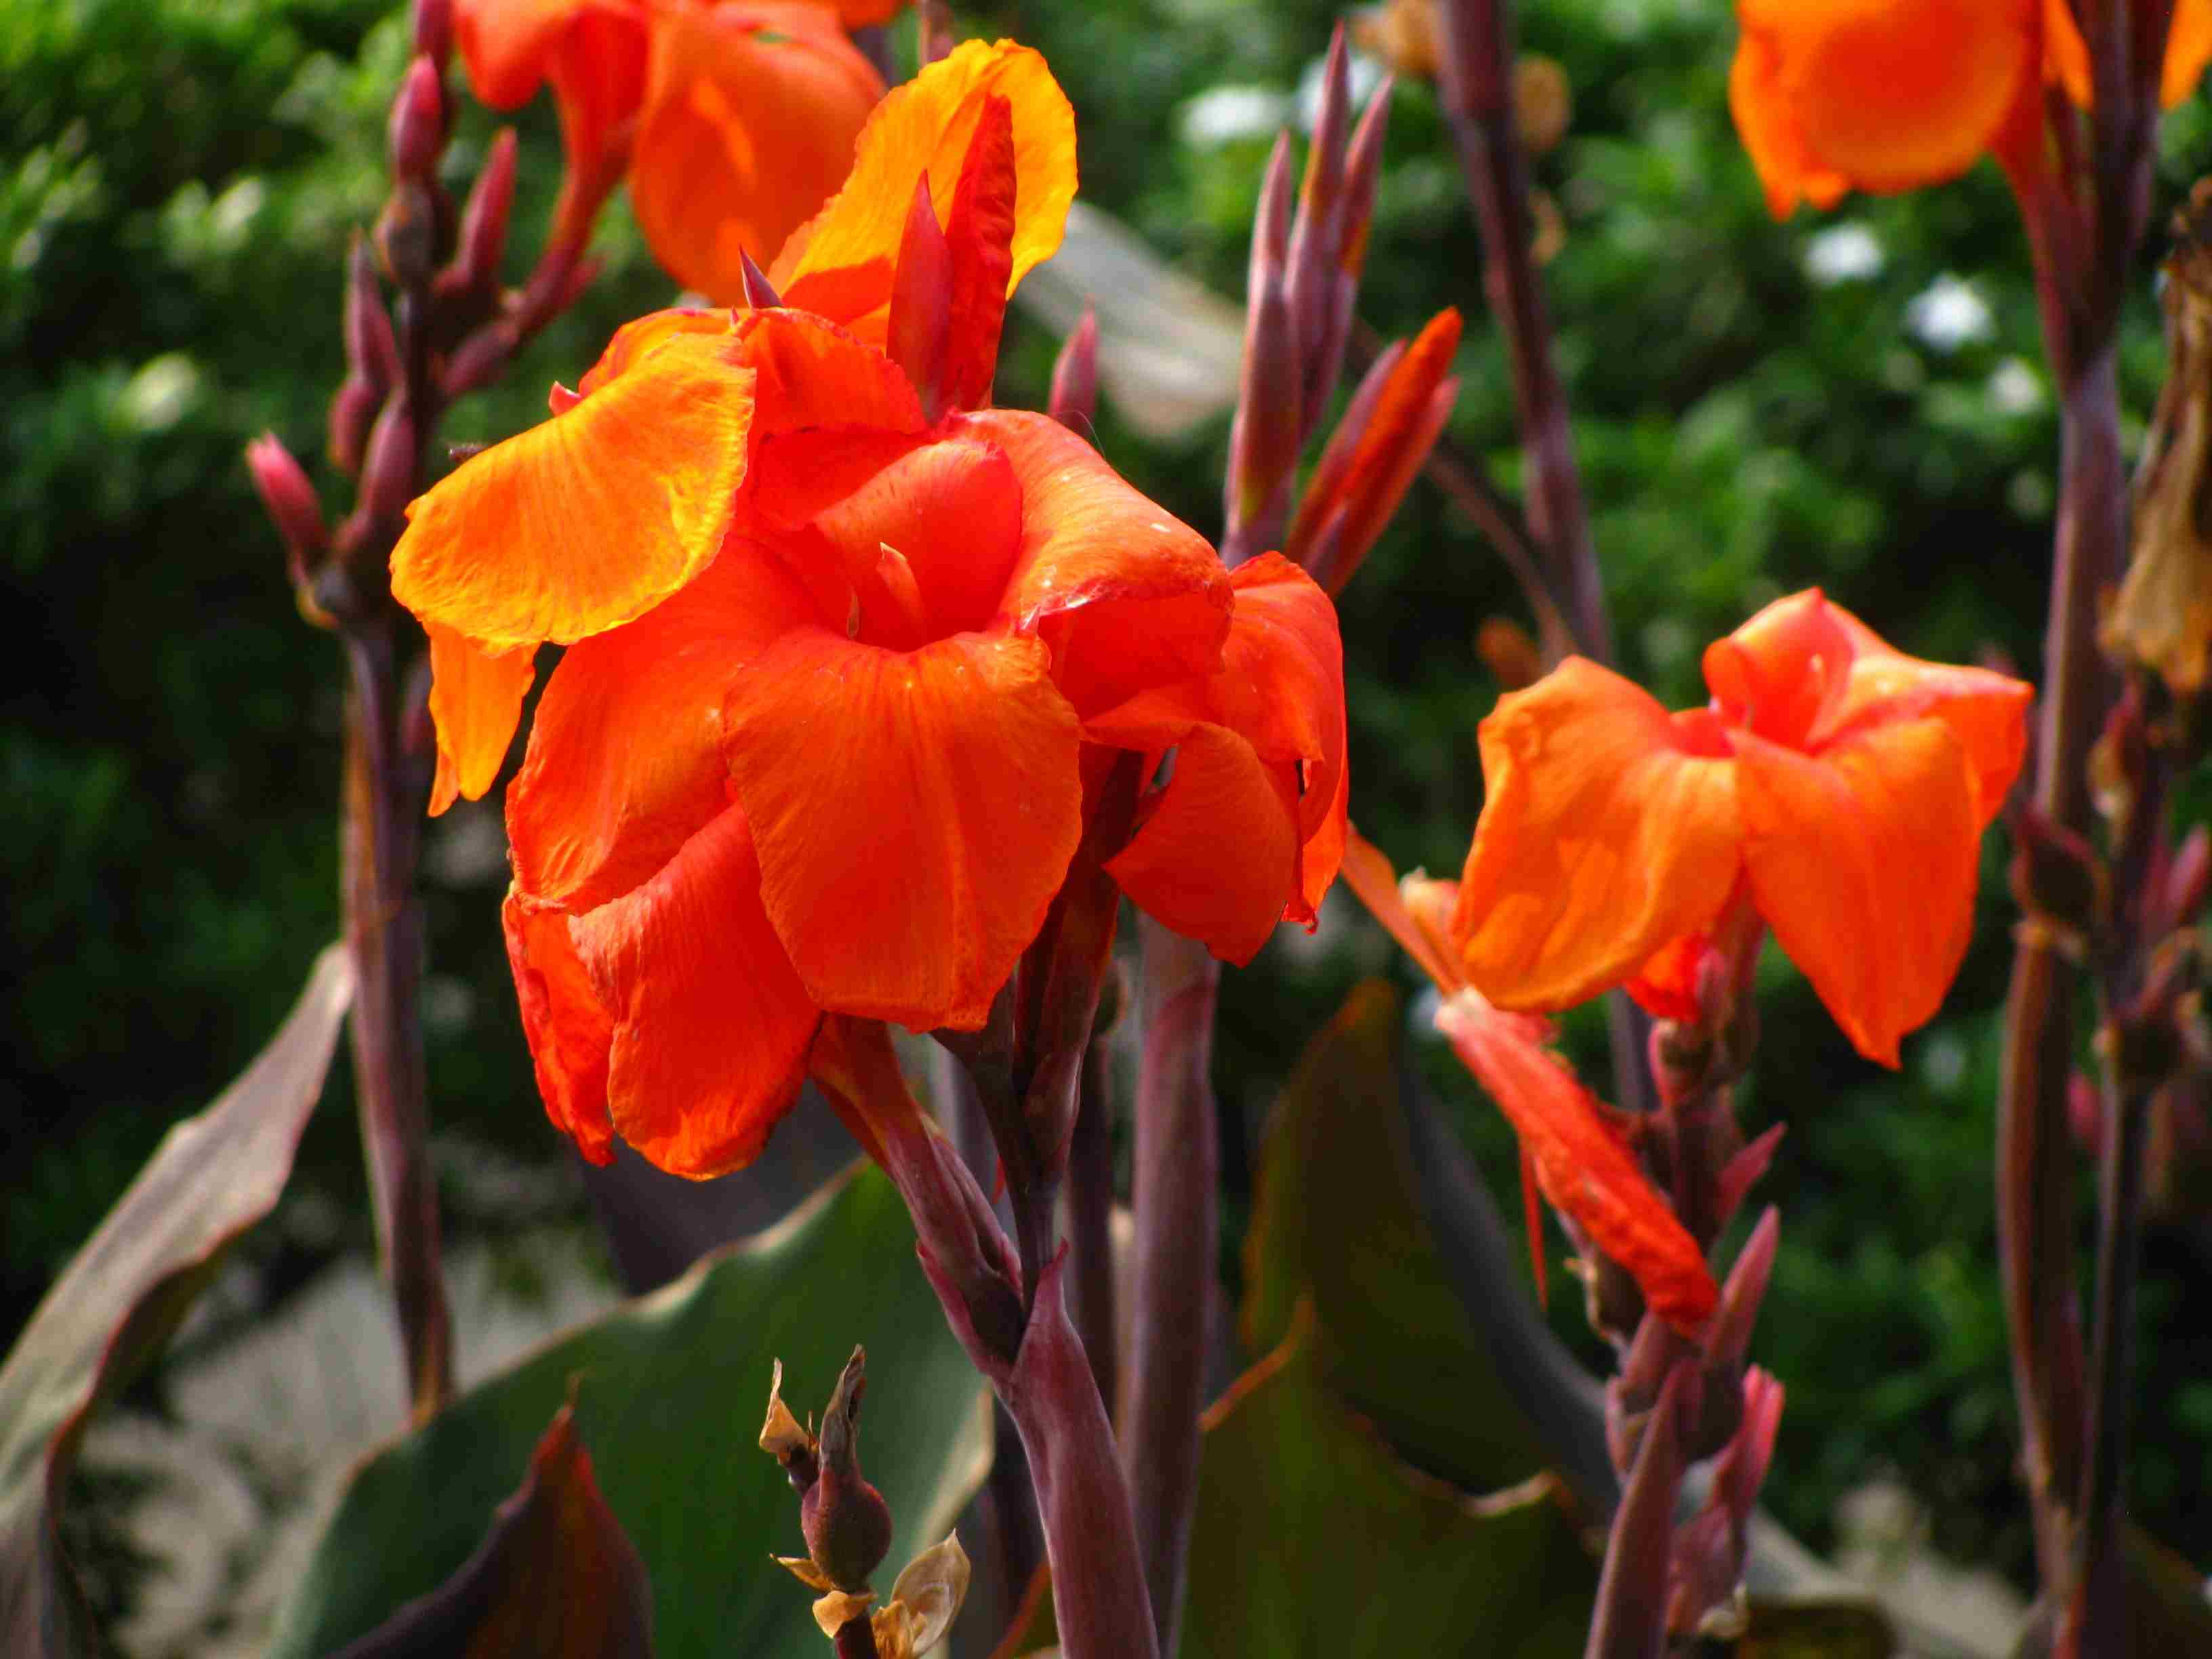 Canna Lilies Blooming In Park